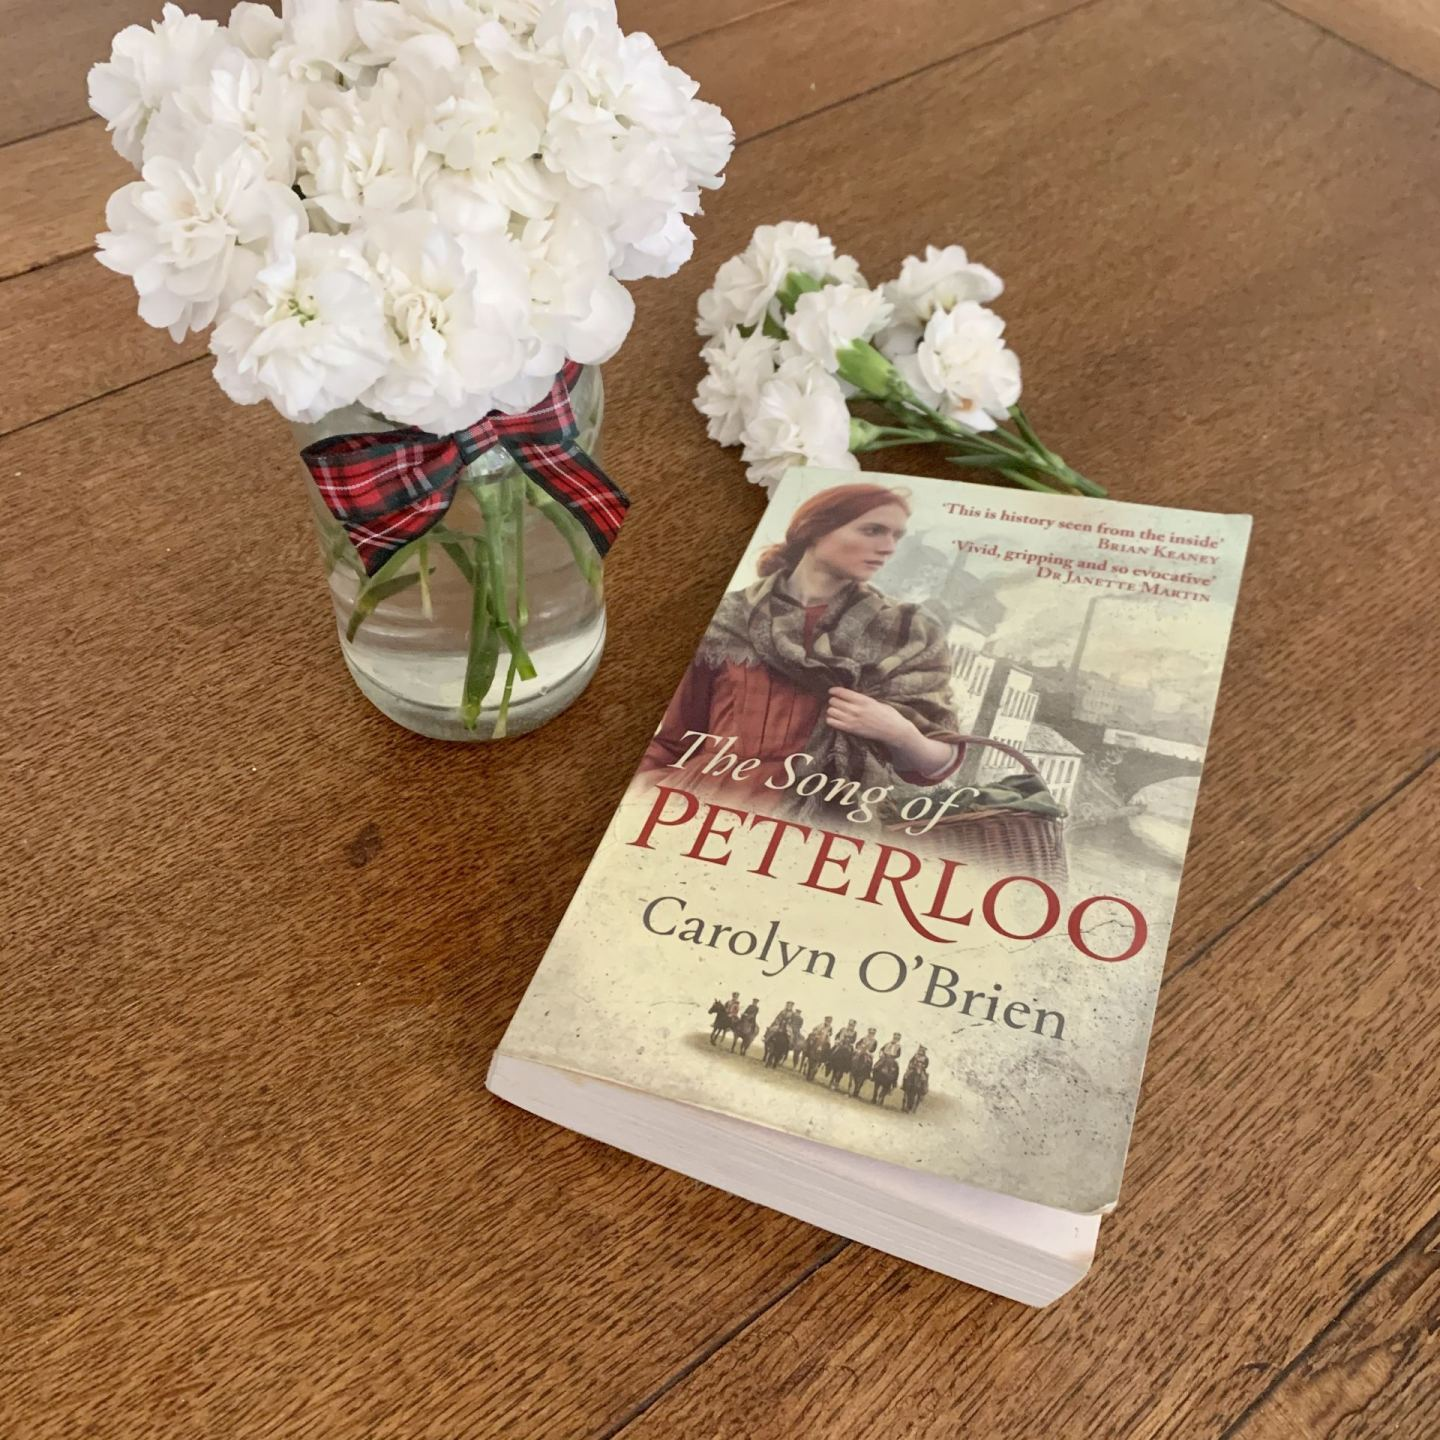 The Song of Peterloo; a powerful page turner